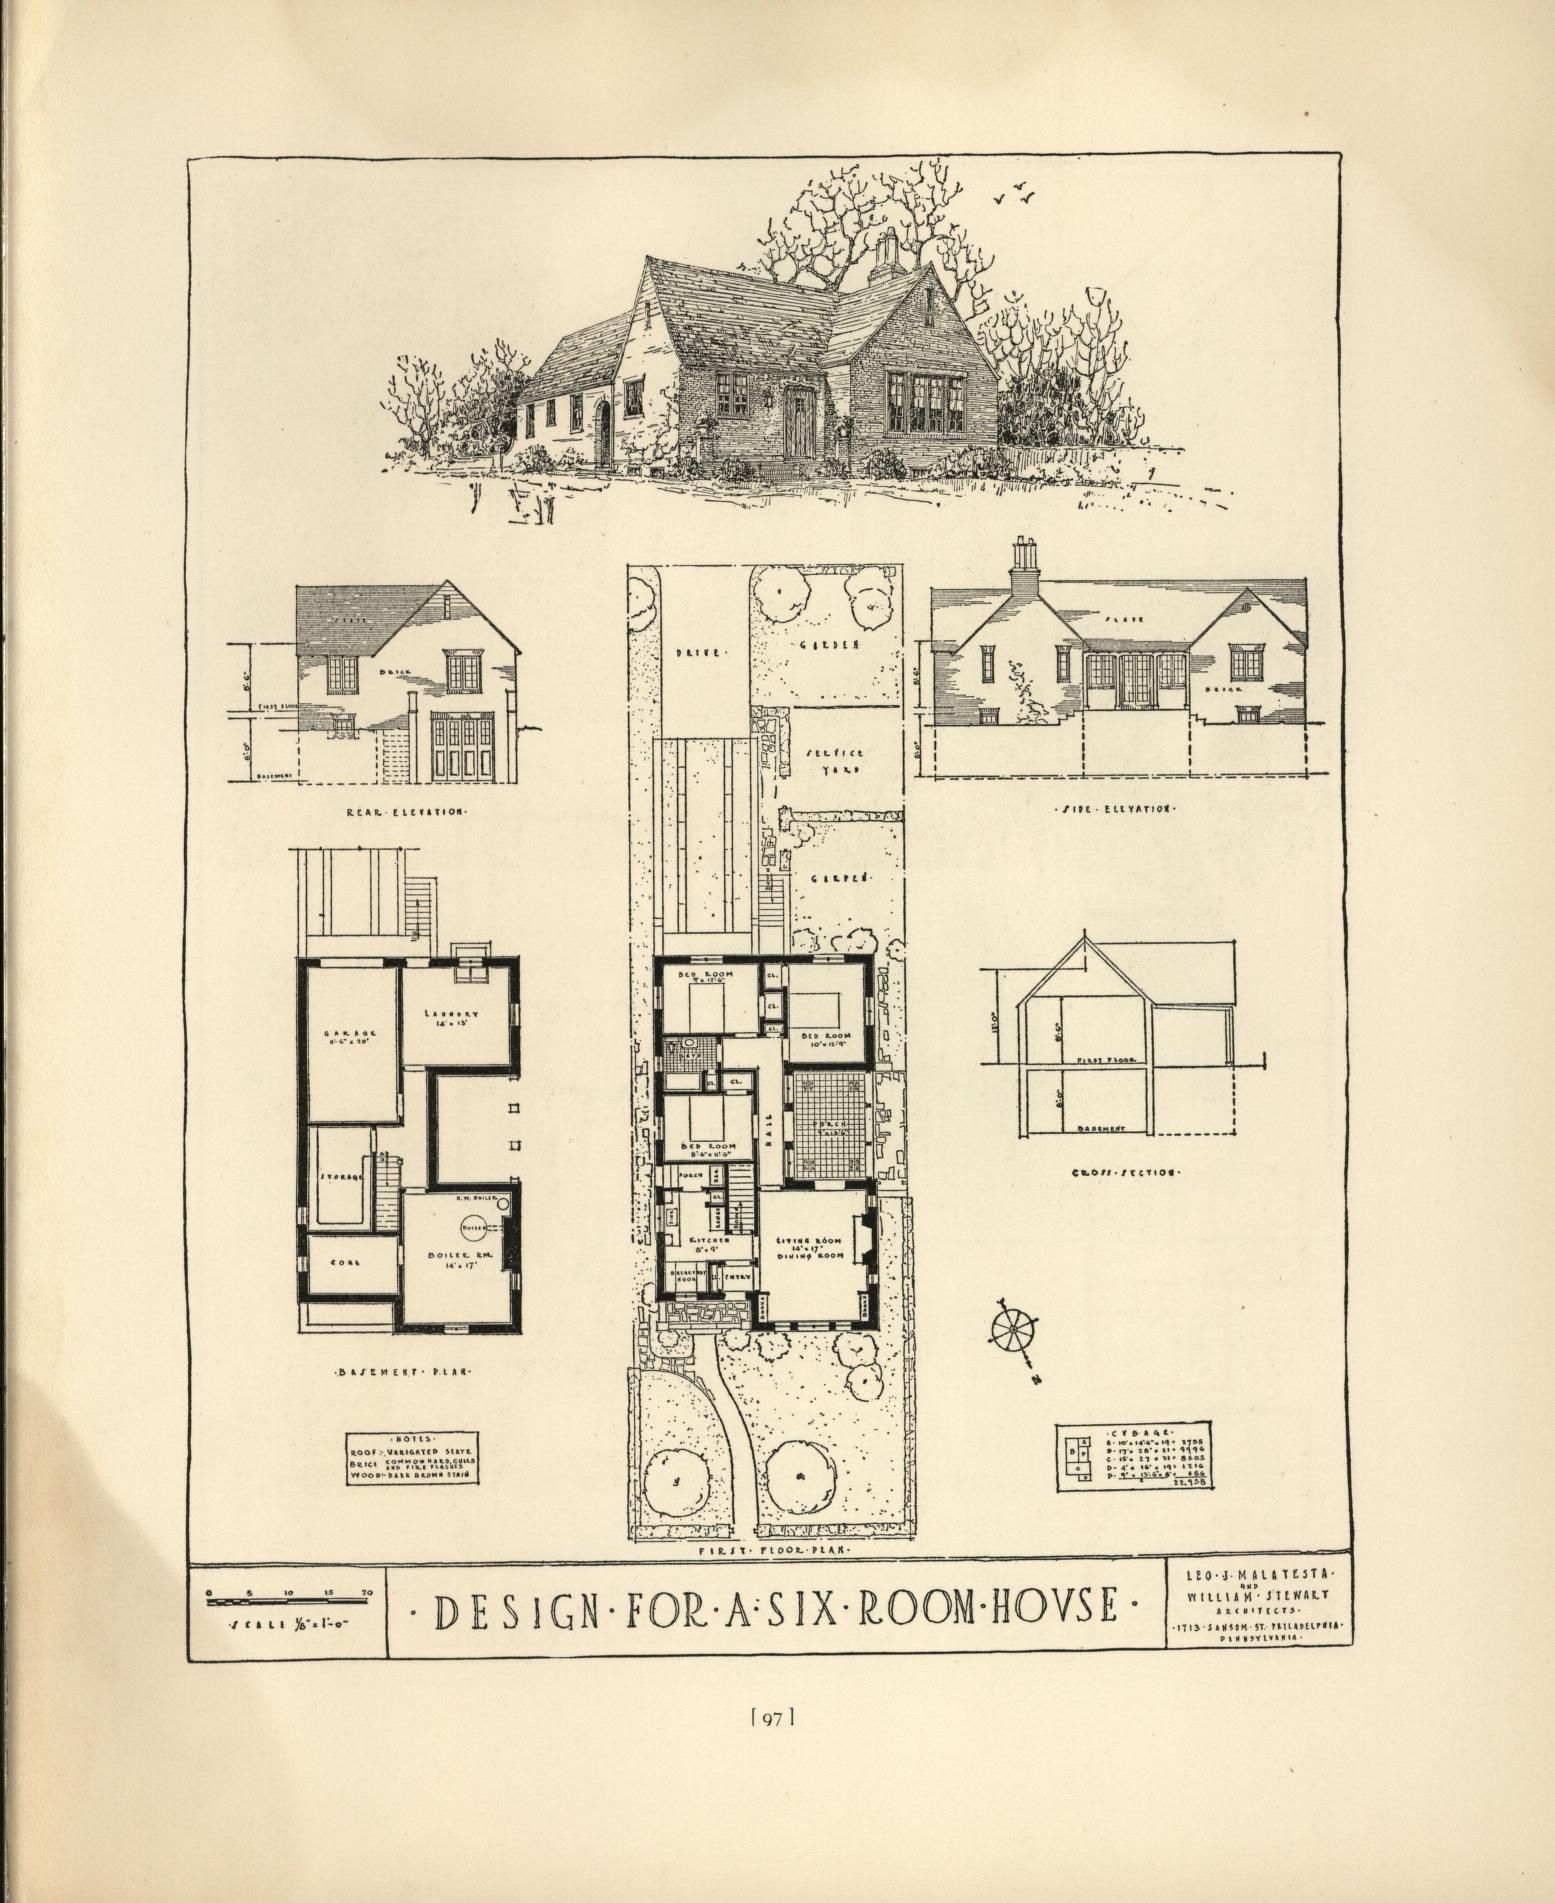 Chicago tribune book of homes Note the narrow lot, tucked in ... on victorian house designs, modern house designs, log house designs, drive under house designs, historic house designs, duplex house designs, one story house designs, garage house designs, walkout basement house designs, southern living house designs, ranch house designs, single storey house designs, small house designs, southwestern house designs, low country house designs, charleston style house designs, saltbox house designs, traditional house designs, colonial house designs,